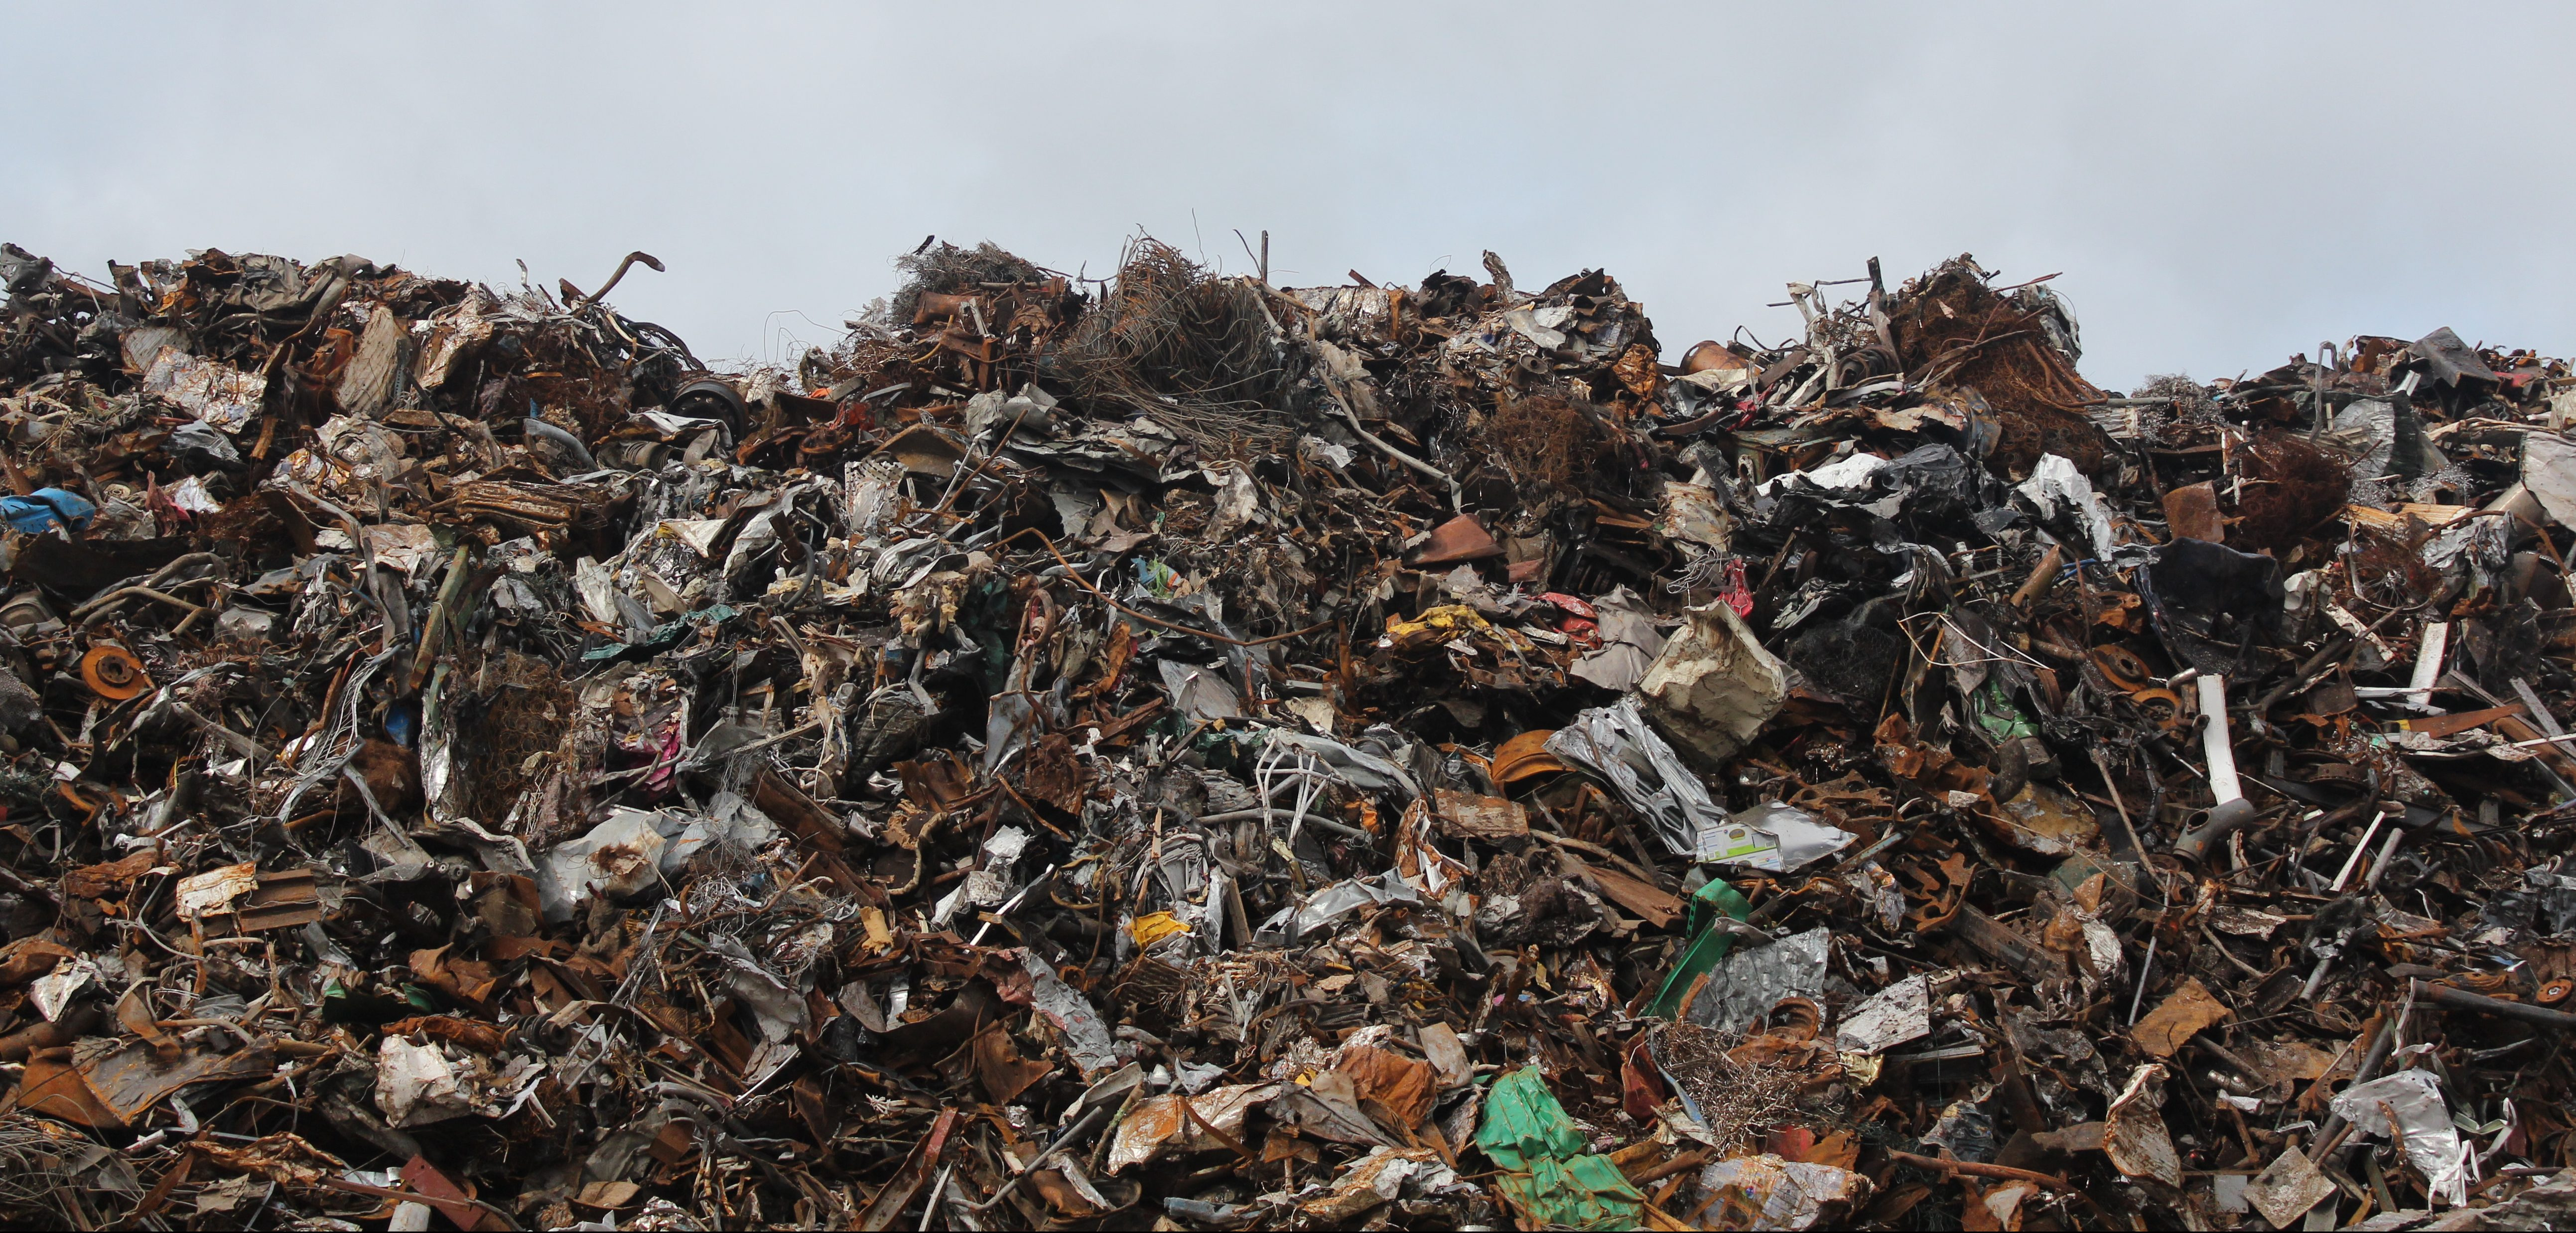 Furniture Recycling reduces costly Landfill